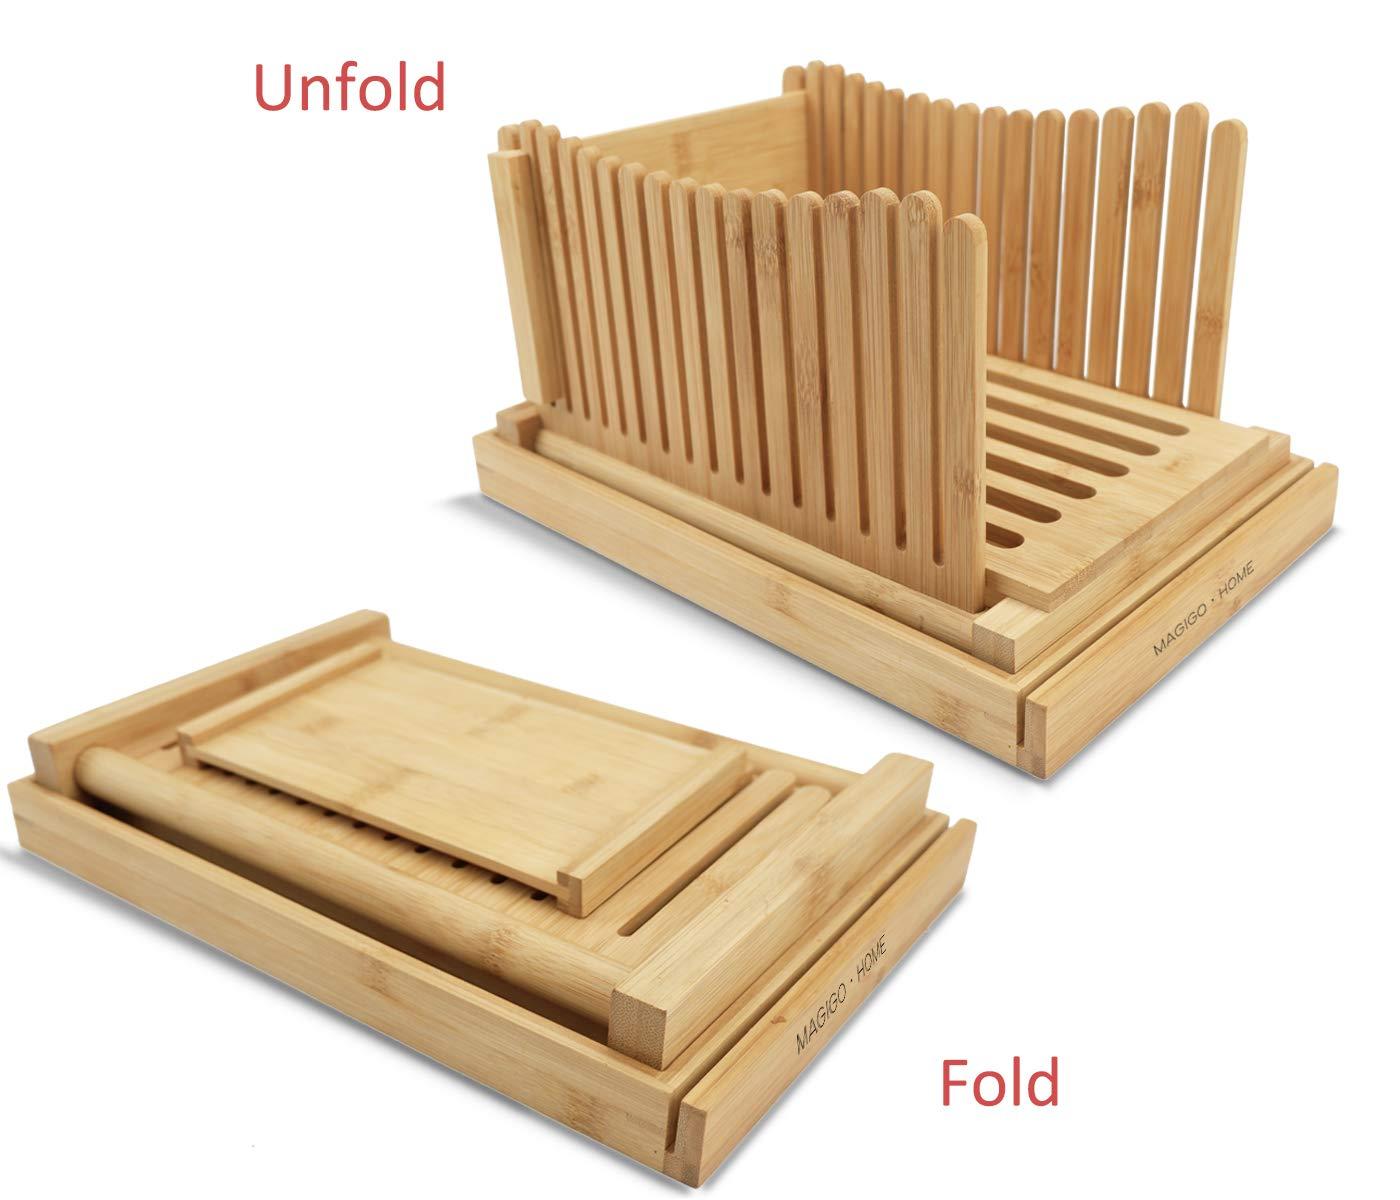 MAGIGO Nature Bamboo Foldable Bread Slicer with Crumb Catcher Tray, Bread Slicing Guide and Knife Rest for Homemade Bread & Loaf Cakes, Thickness Adjustable, Contains 20 Bread Bags & 20 Twist Ties by MAGIGO (Image #2)